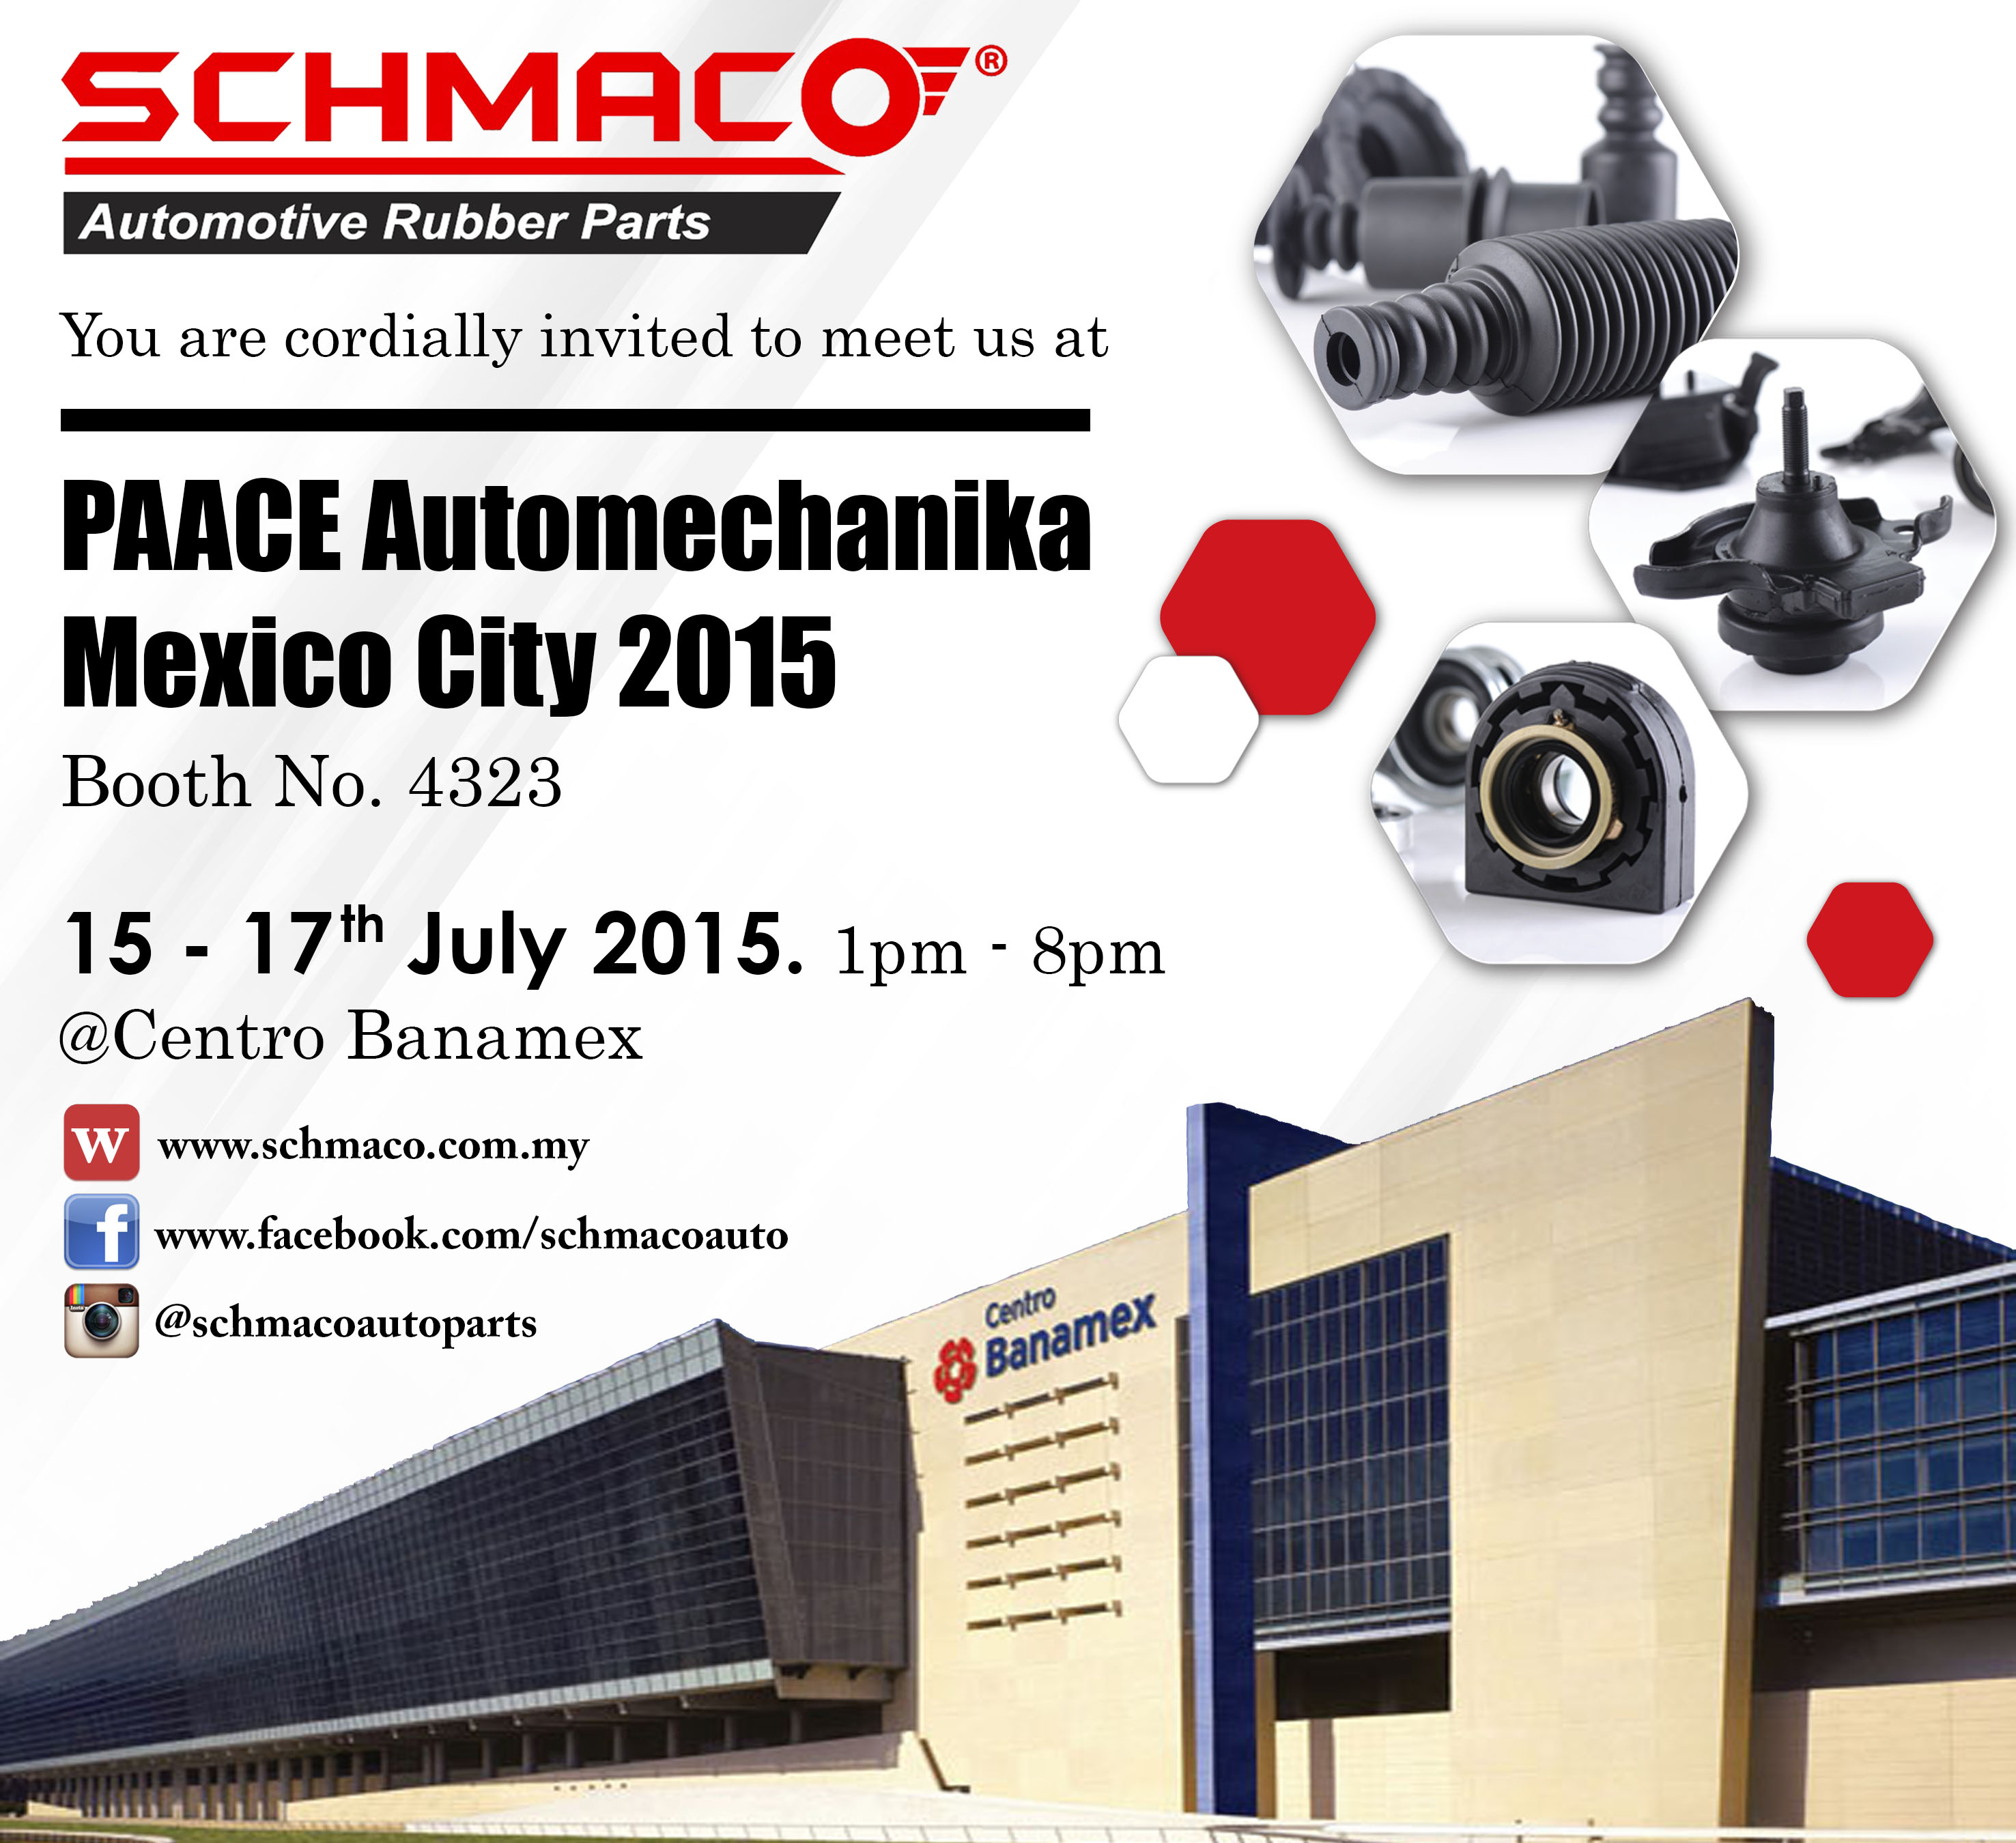 18. Teaser for PAACE Automechanika 2015 13th July